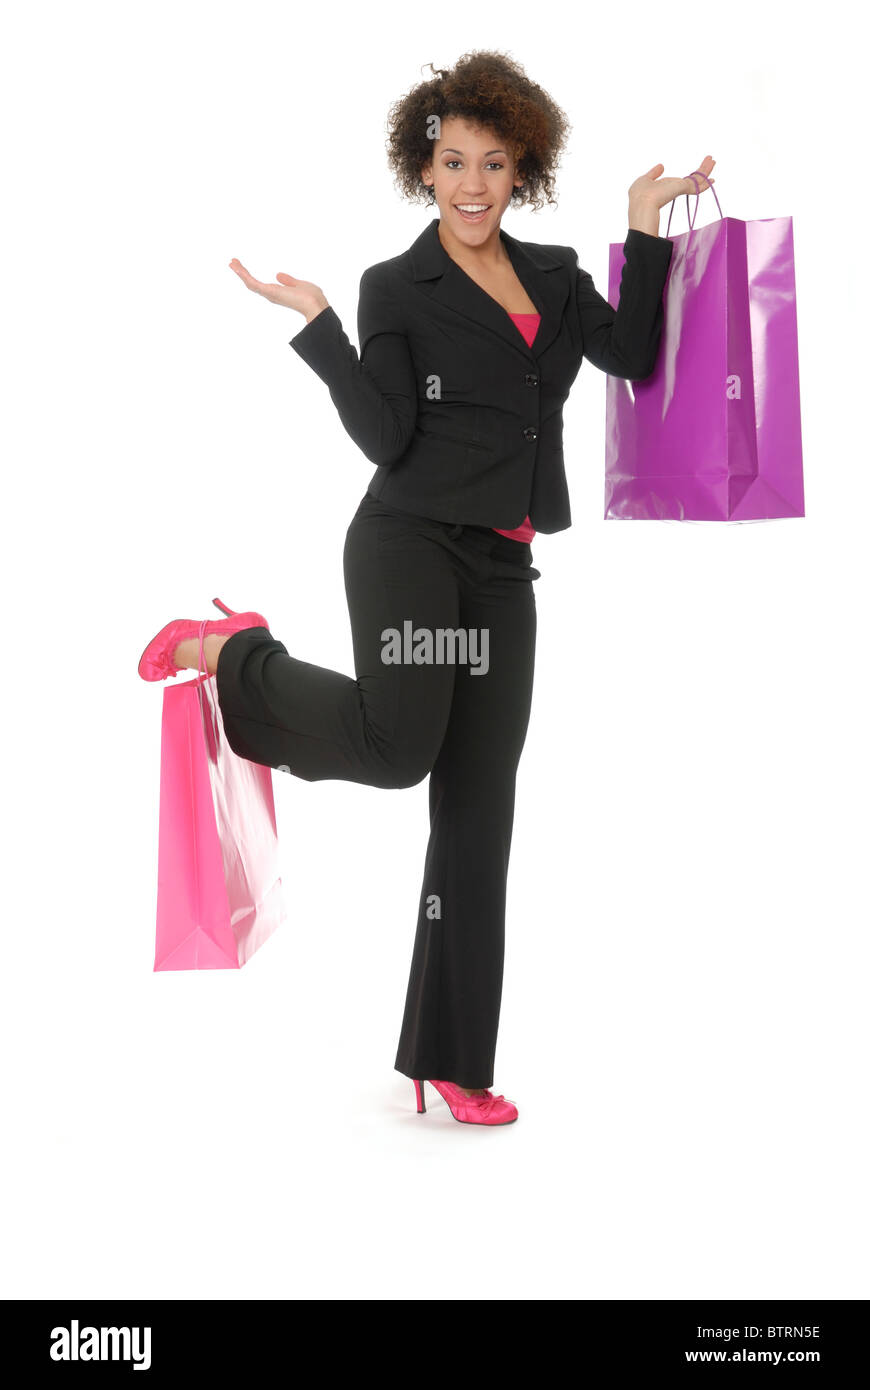 Attractive, enthusiastic young woman shopper, holding one bag in her hand and one on her shoe or foot. Model is - Stock Image